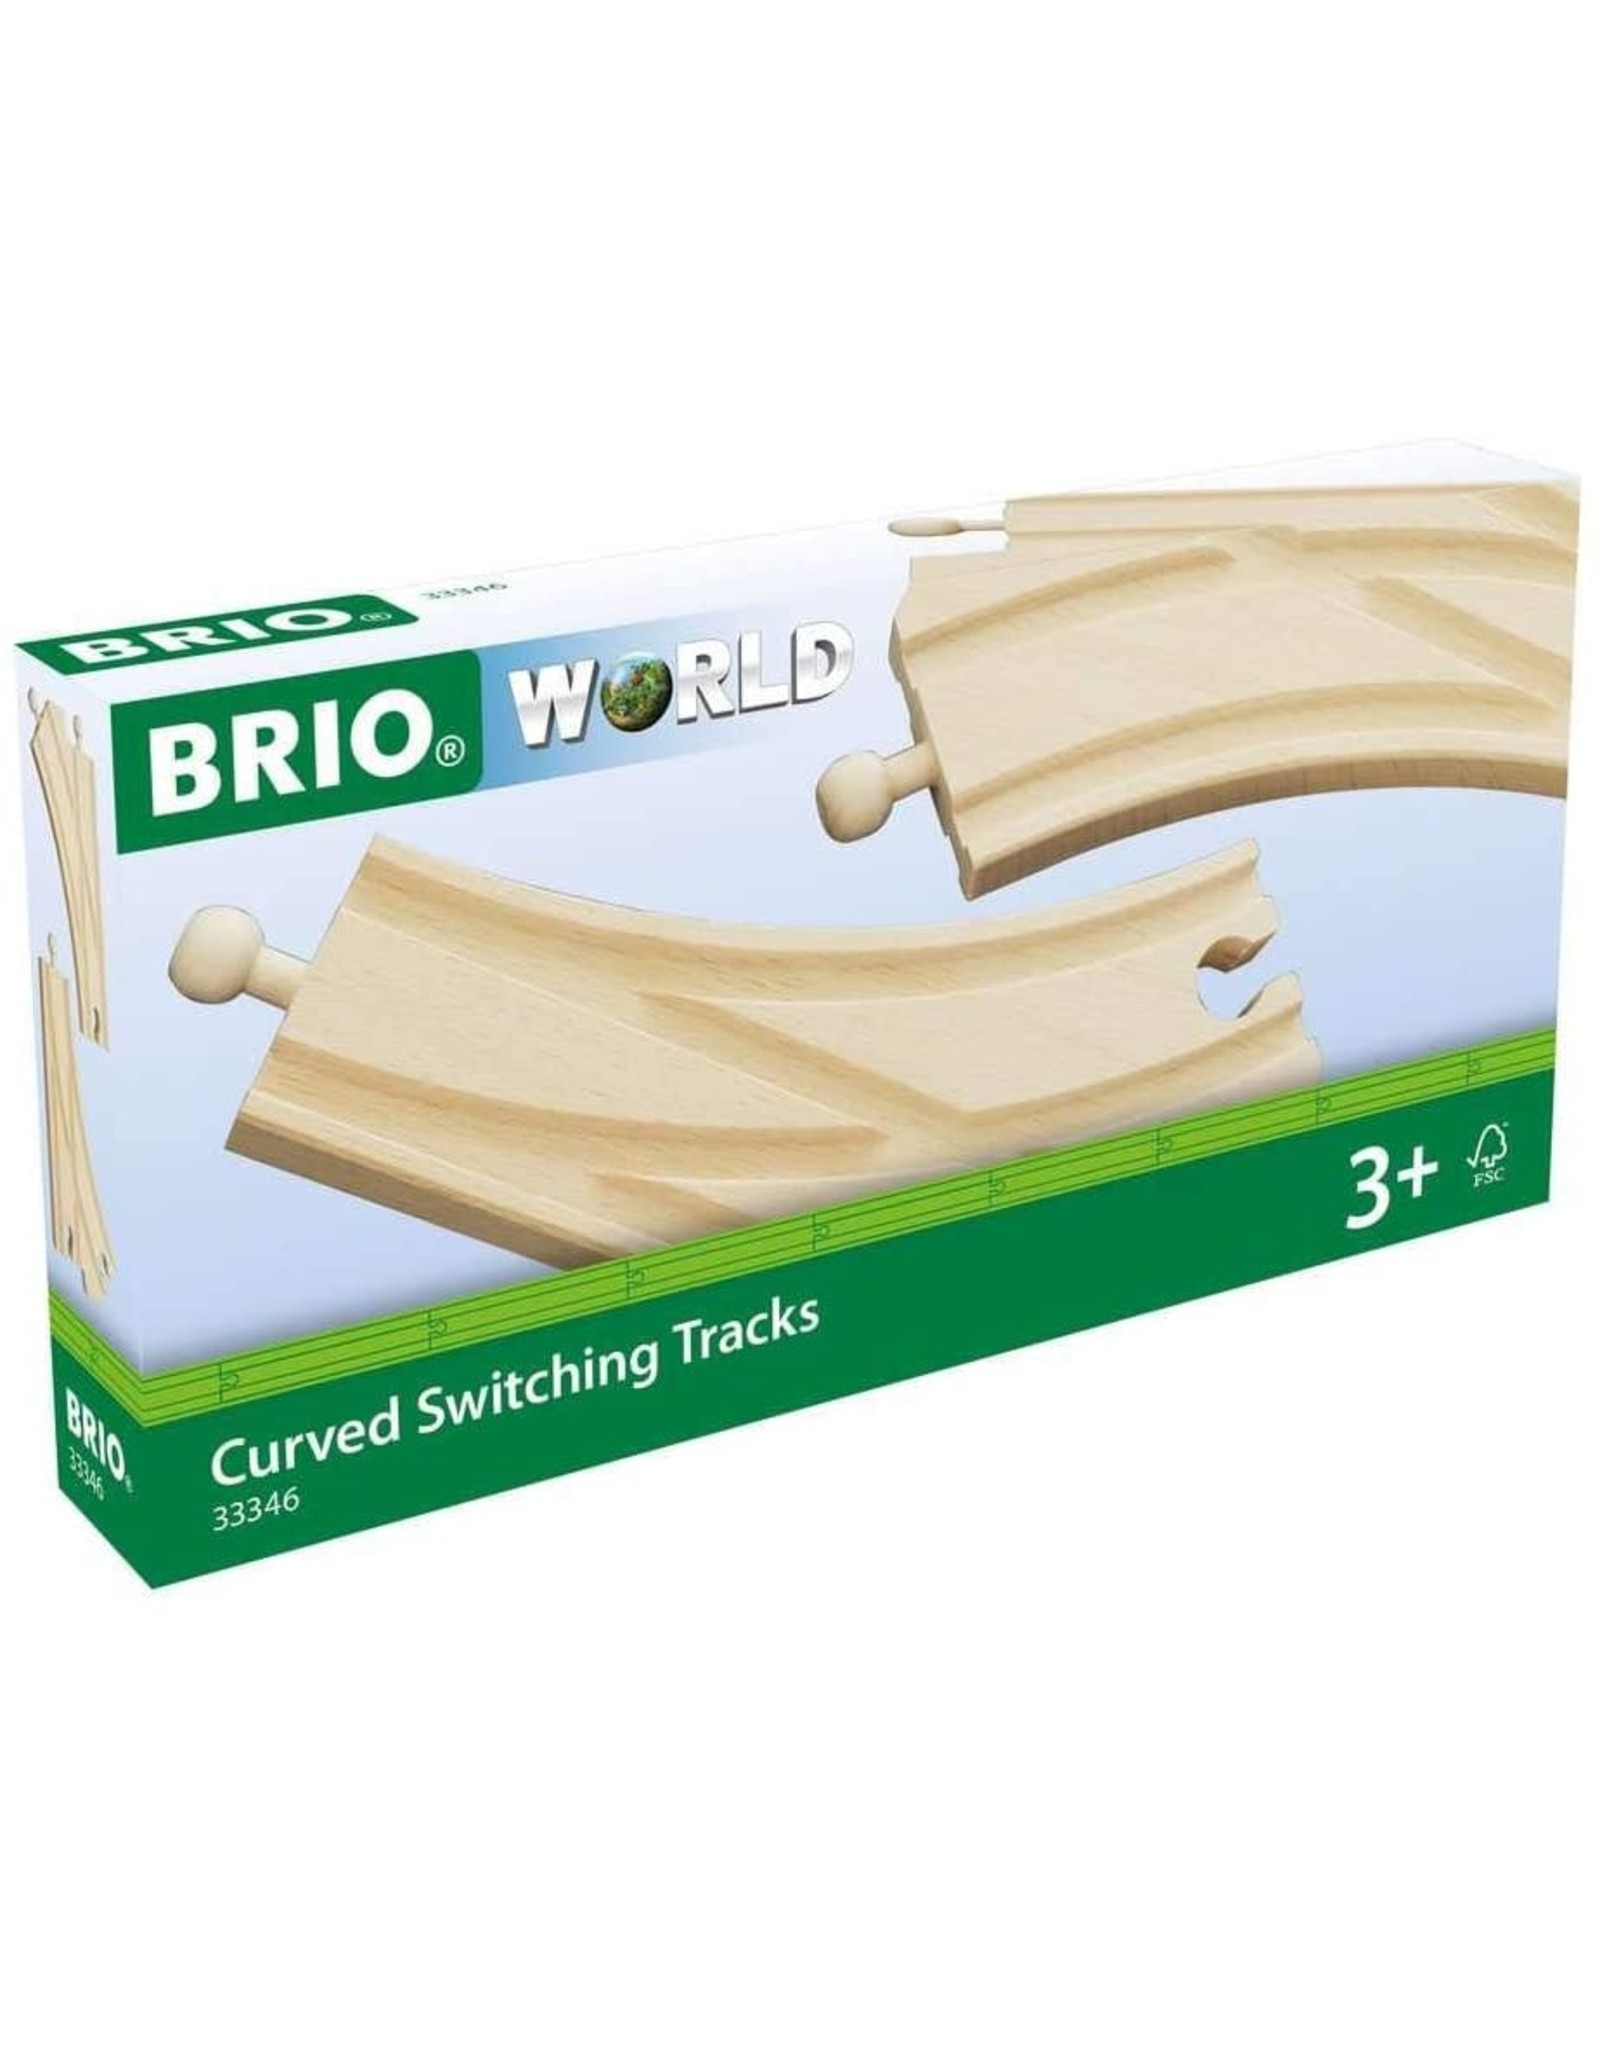 BRIO Curved Switching Tracks